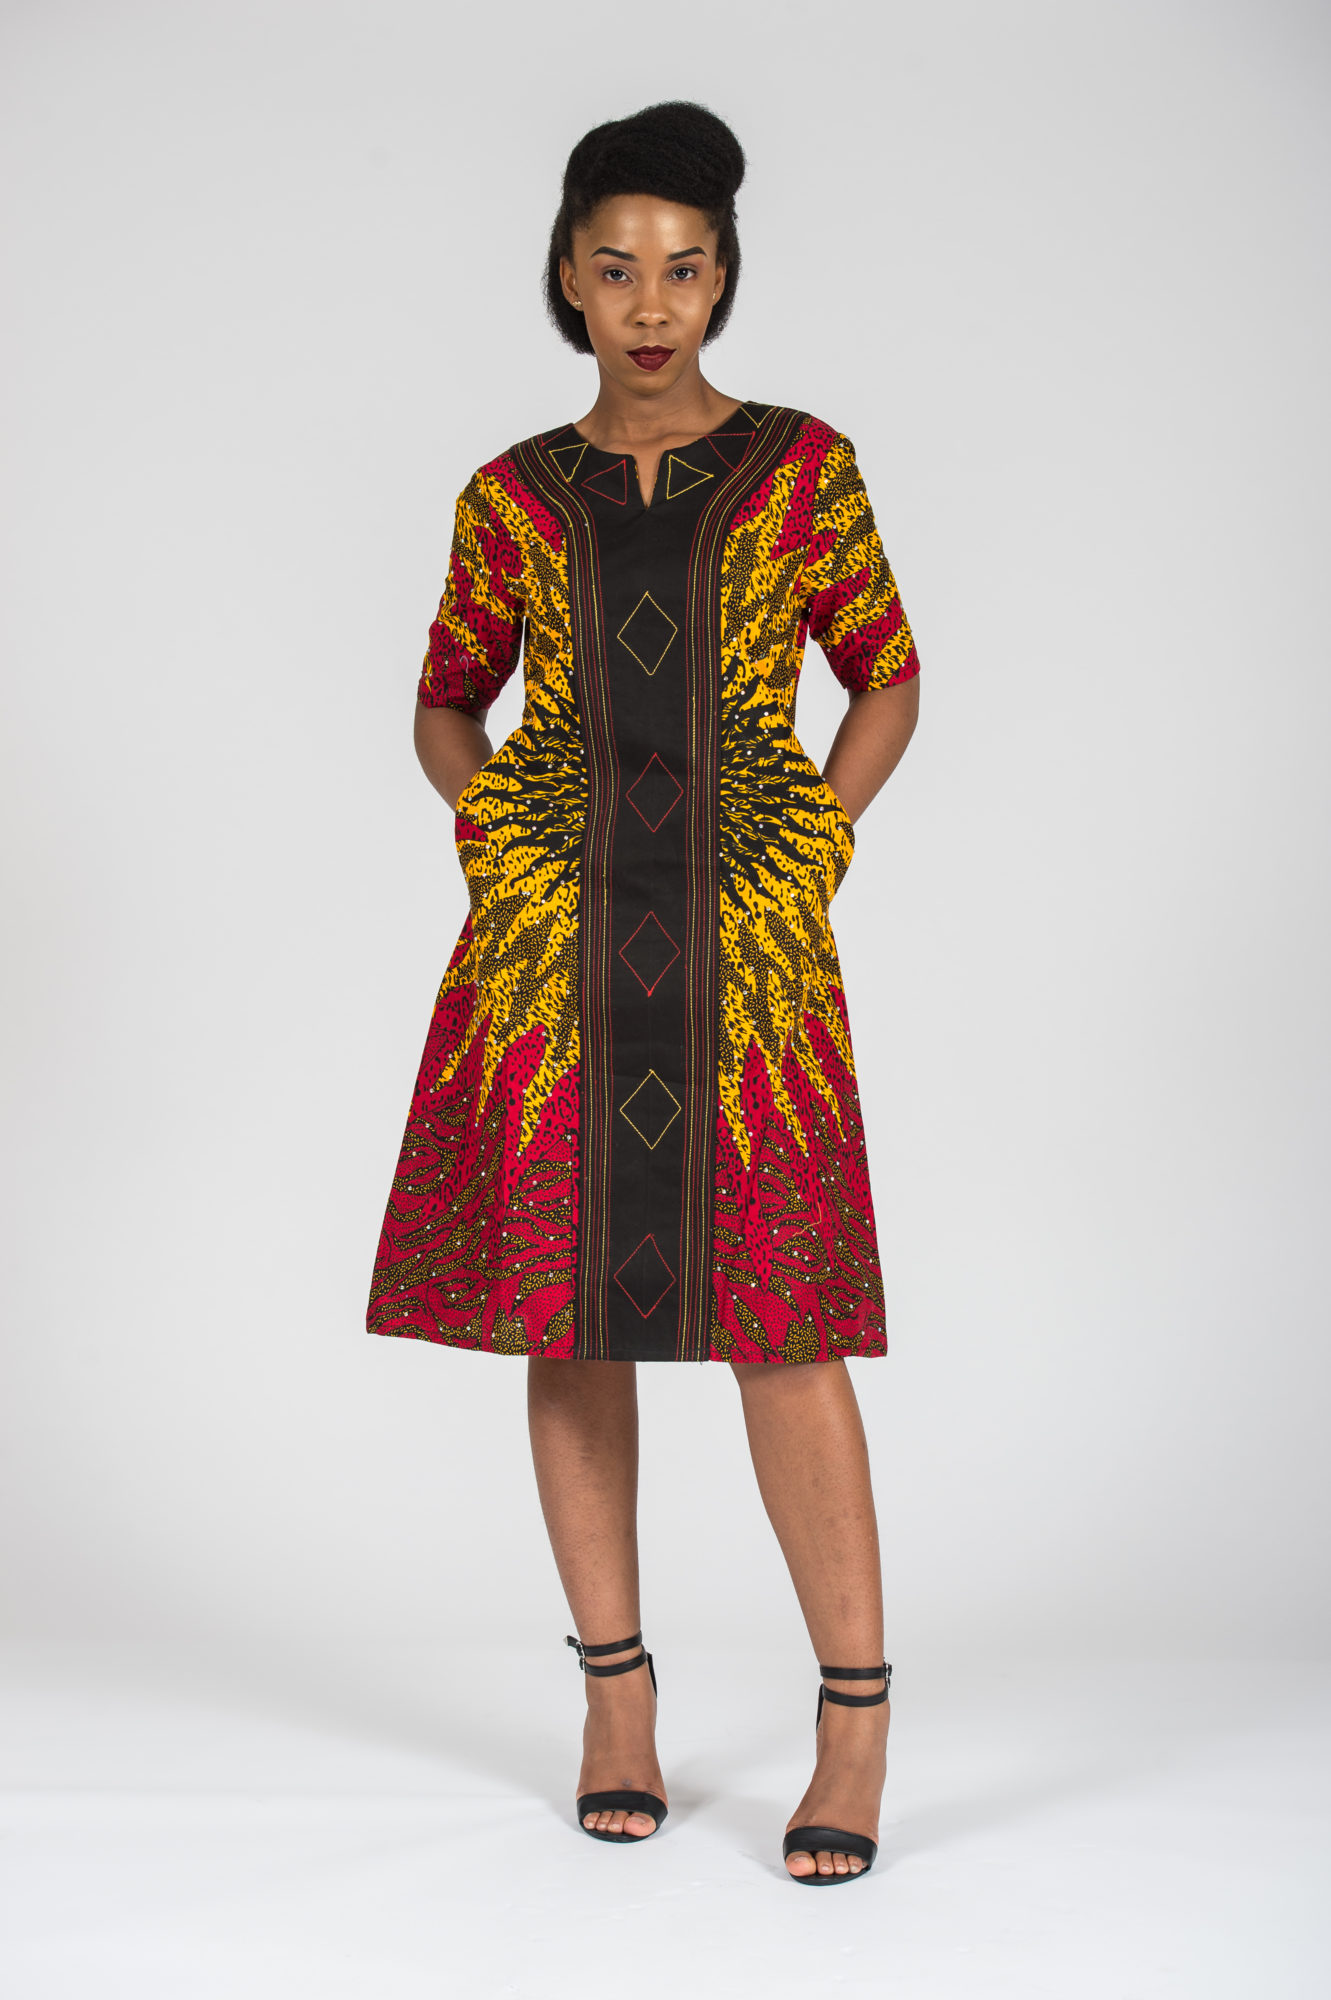 African Print Clothing Near Me - PerfectFitnessClothings.CO